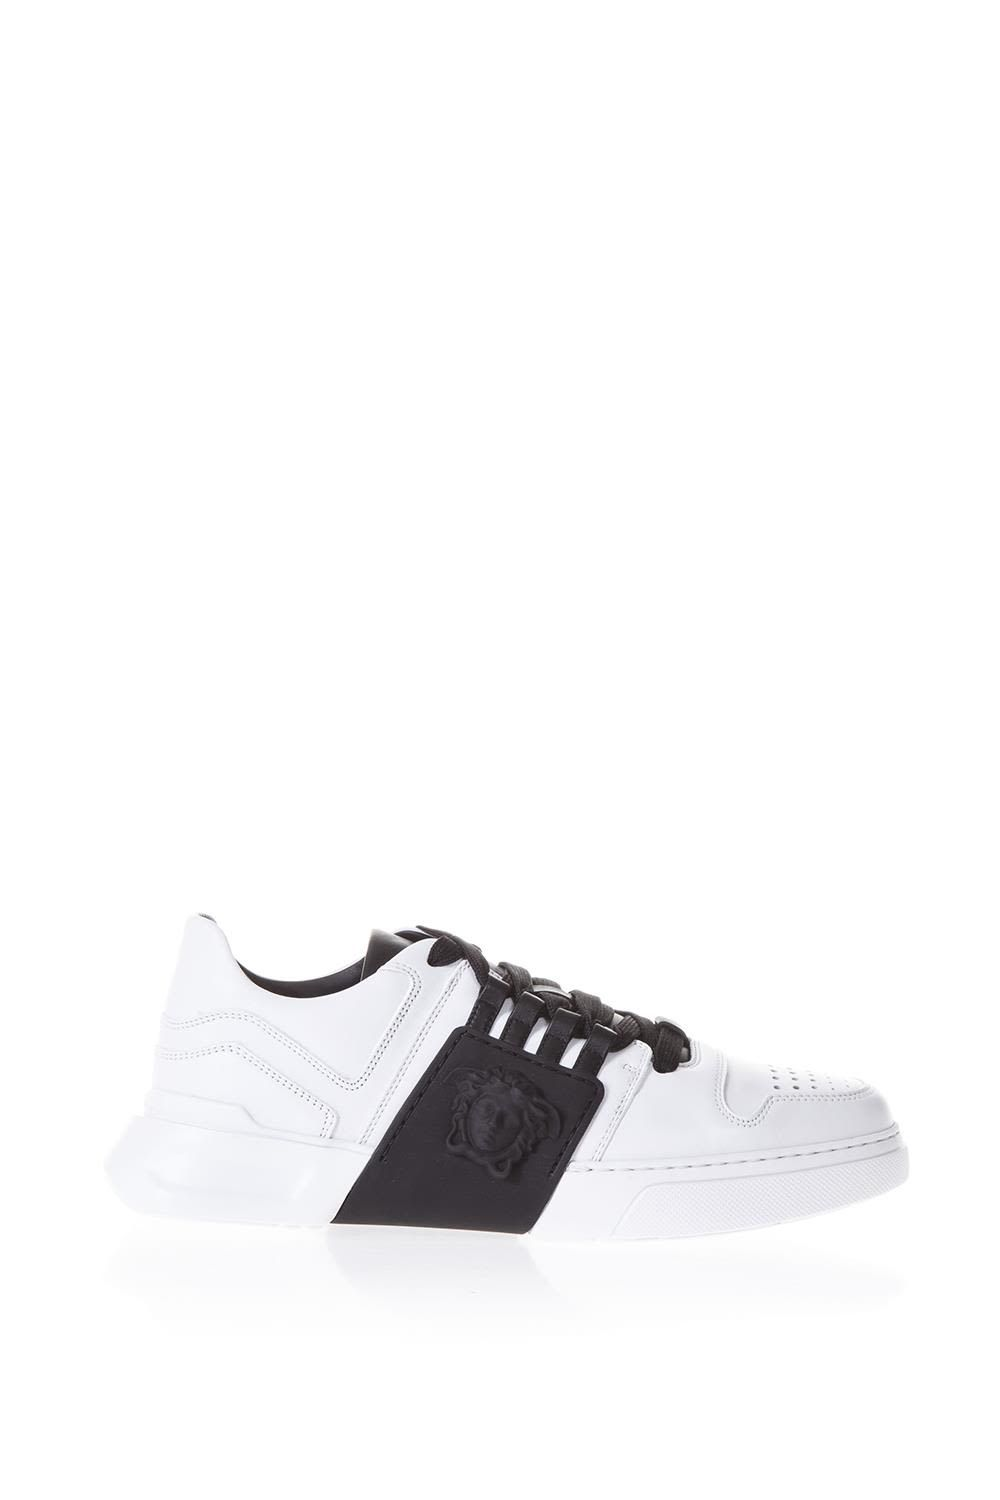 69feaa3ea5 VERSACE BICOLOR LACED SNEAKERS IN LEATHER. #versace #shoes   Versace ...